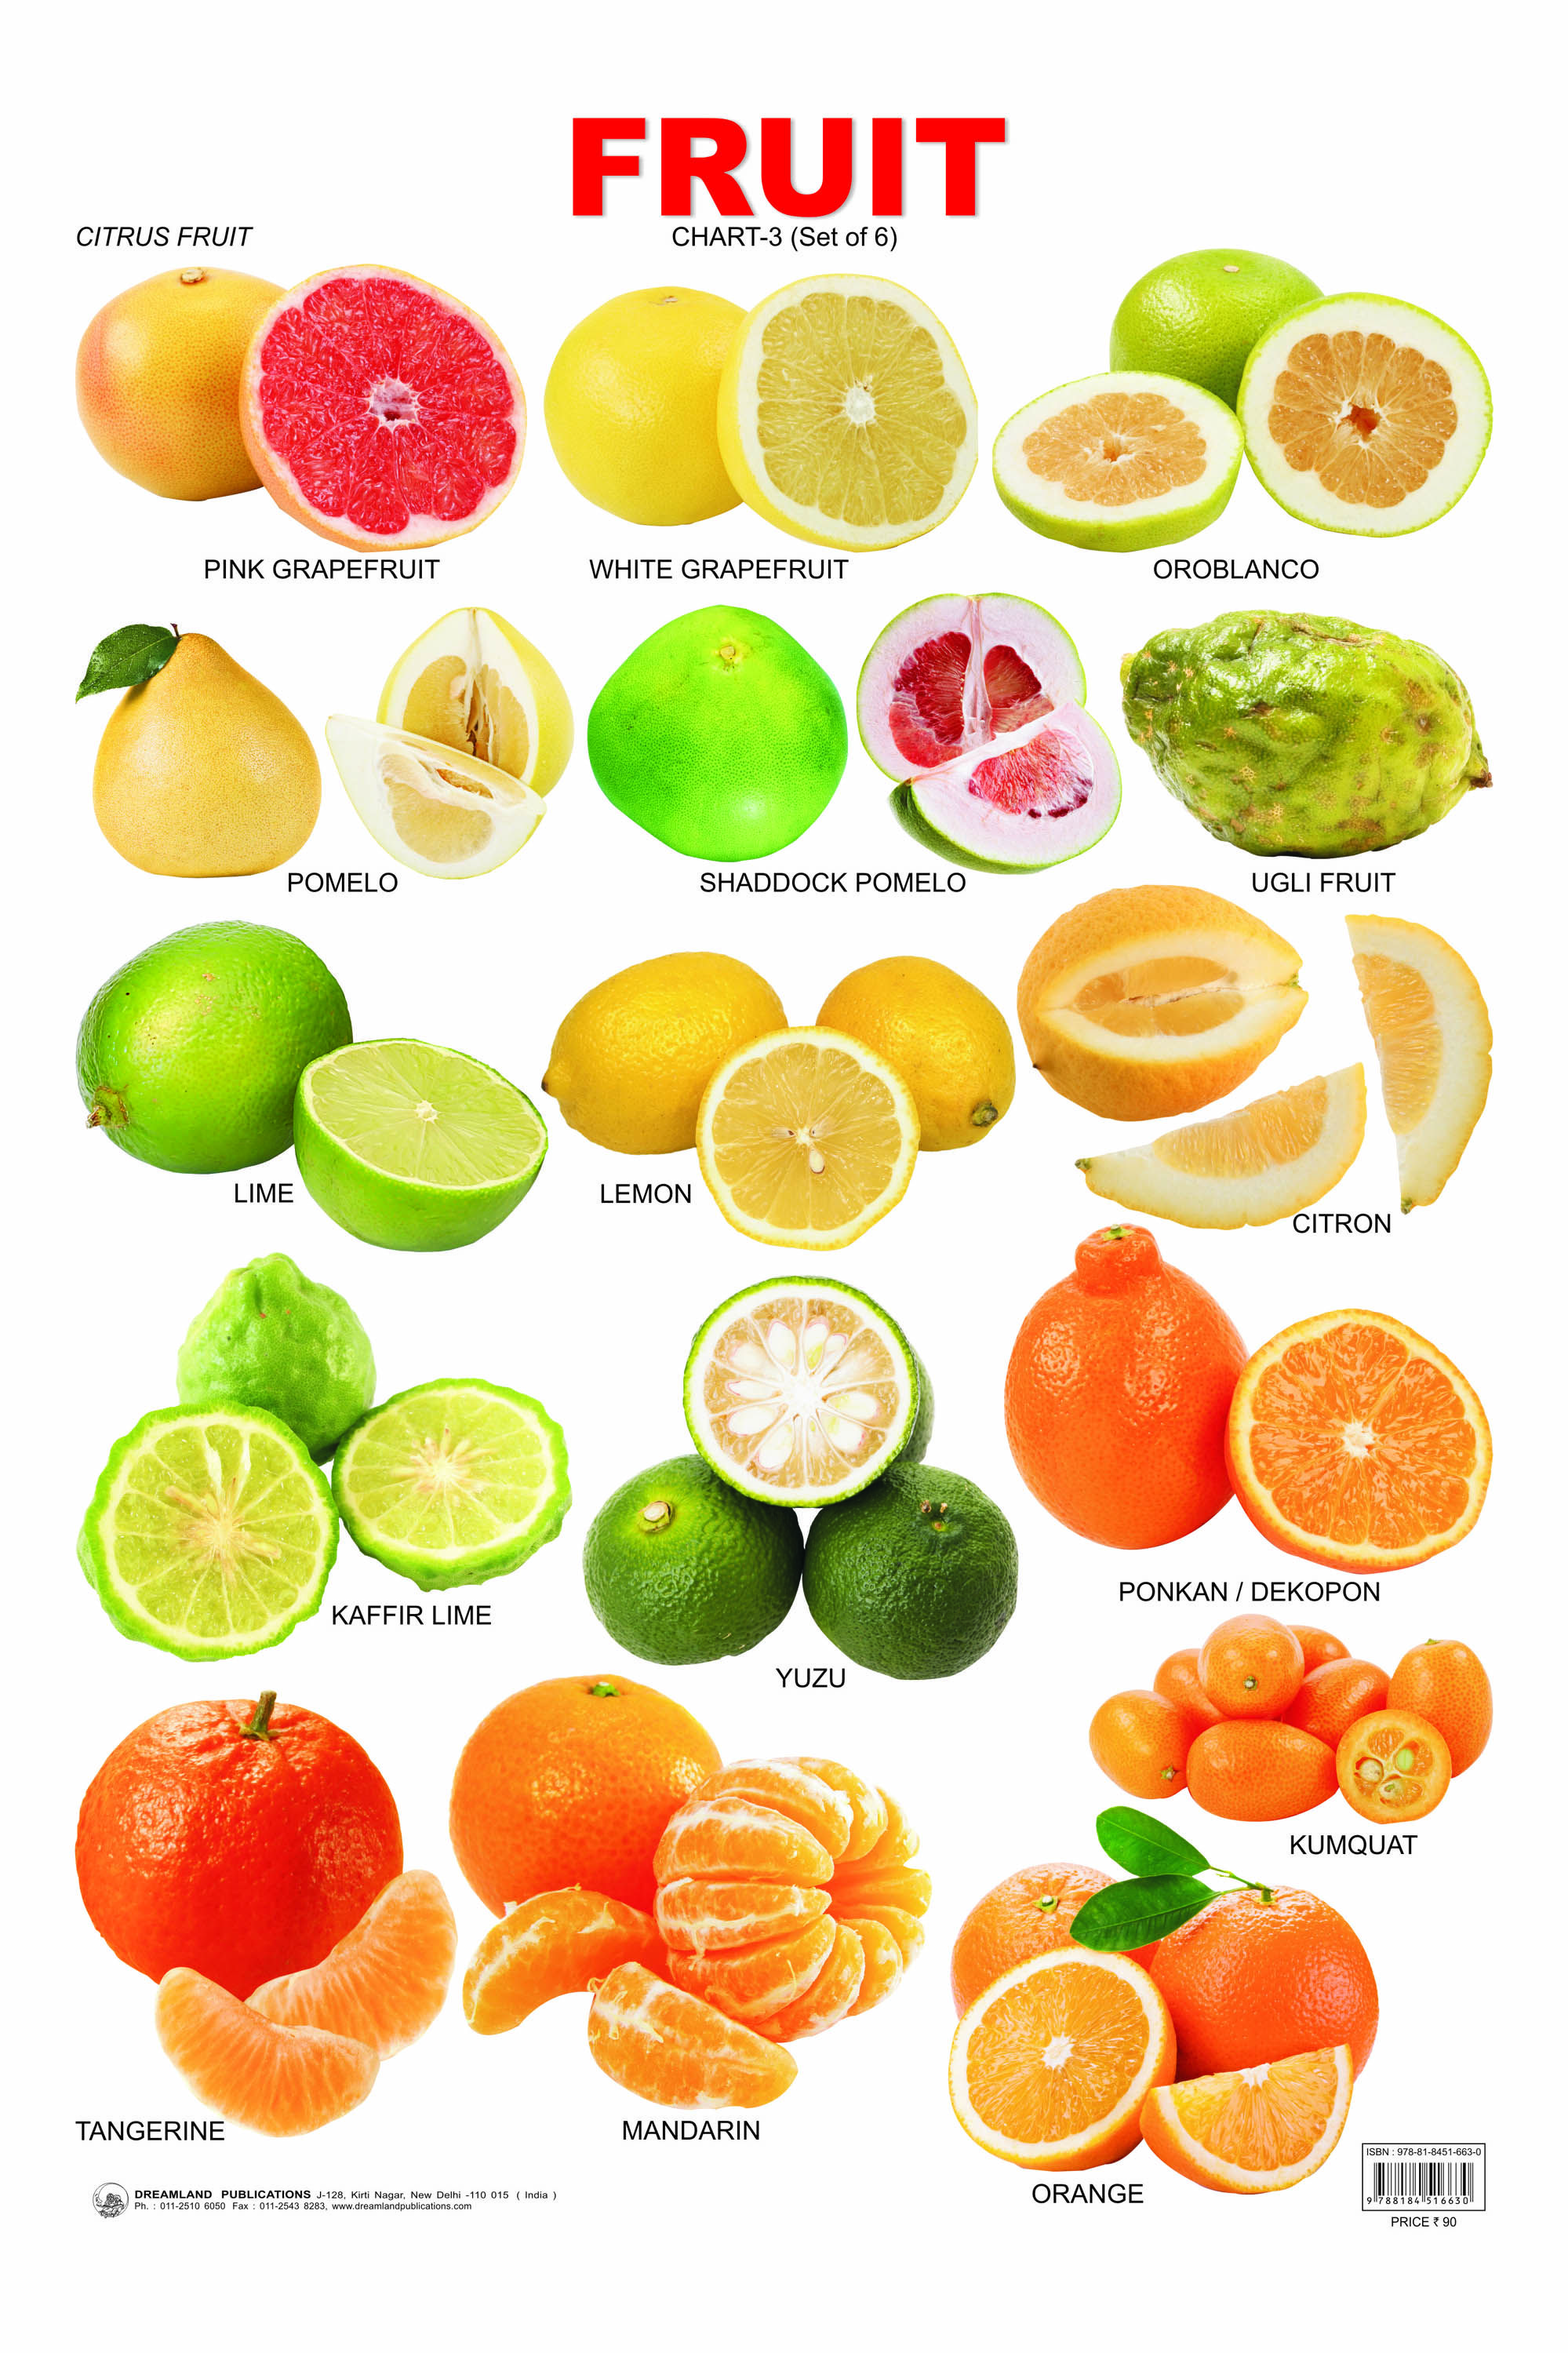 fruit tree list of citrus fruits